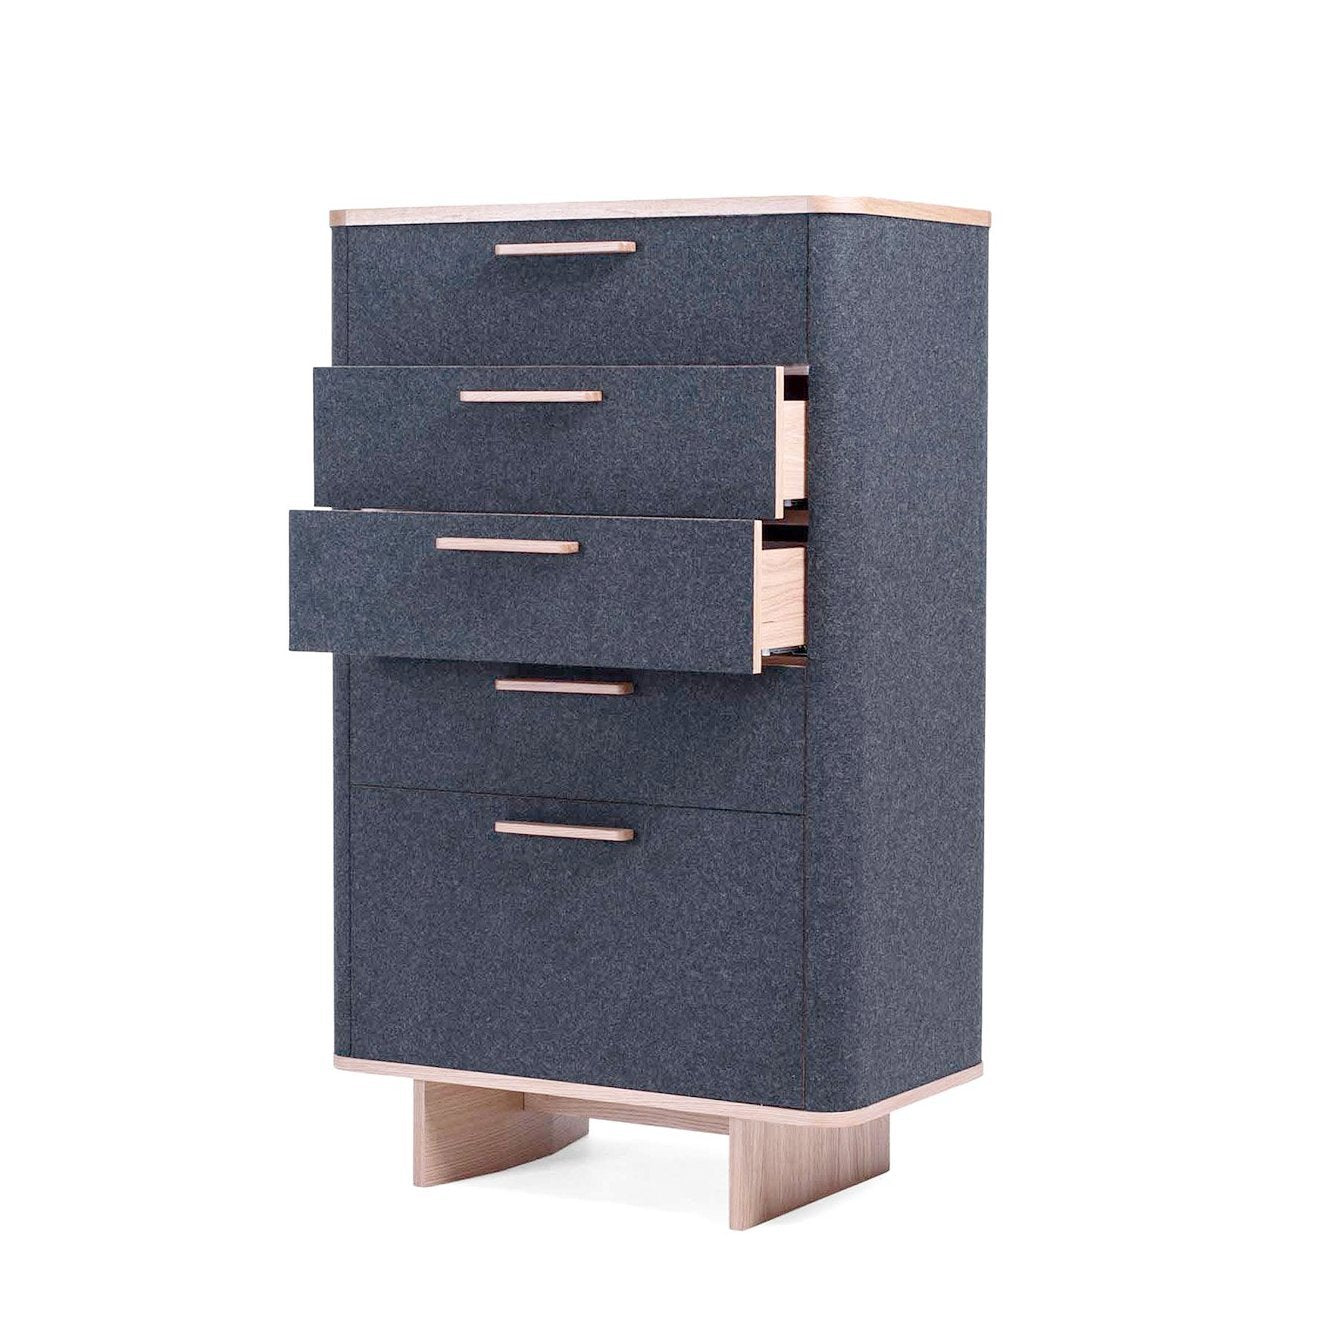 [FES2252DGREY] Felt Chest of Drawers